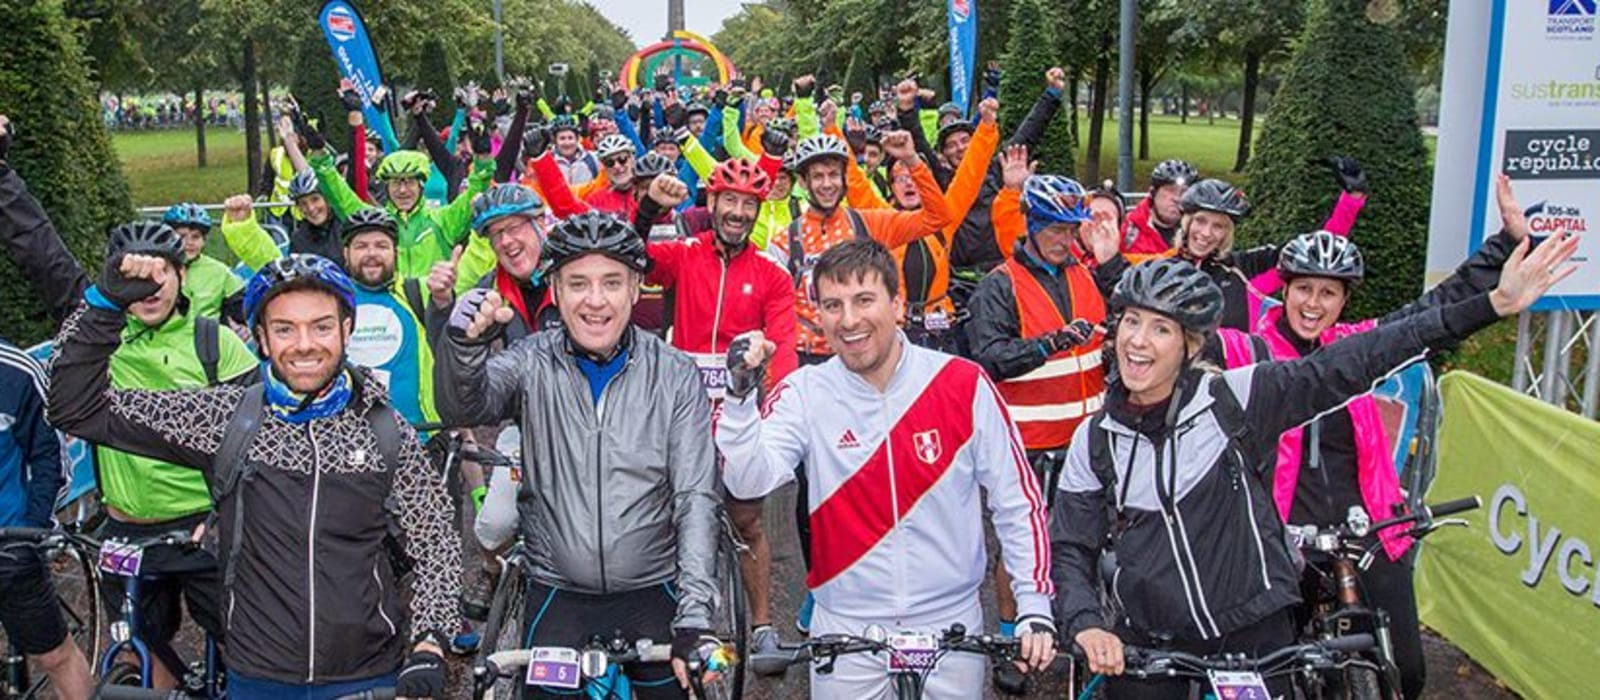 Pedal for Scotland De'ils On Wheels fundraiser